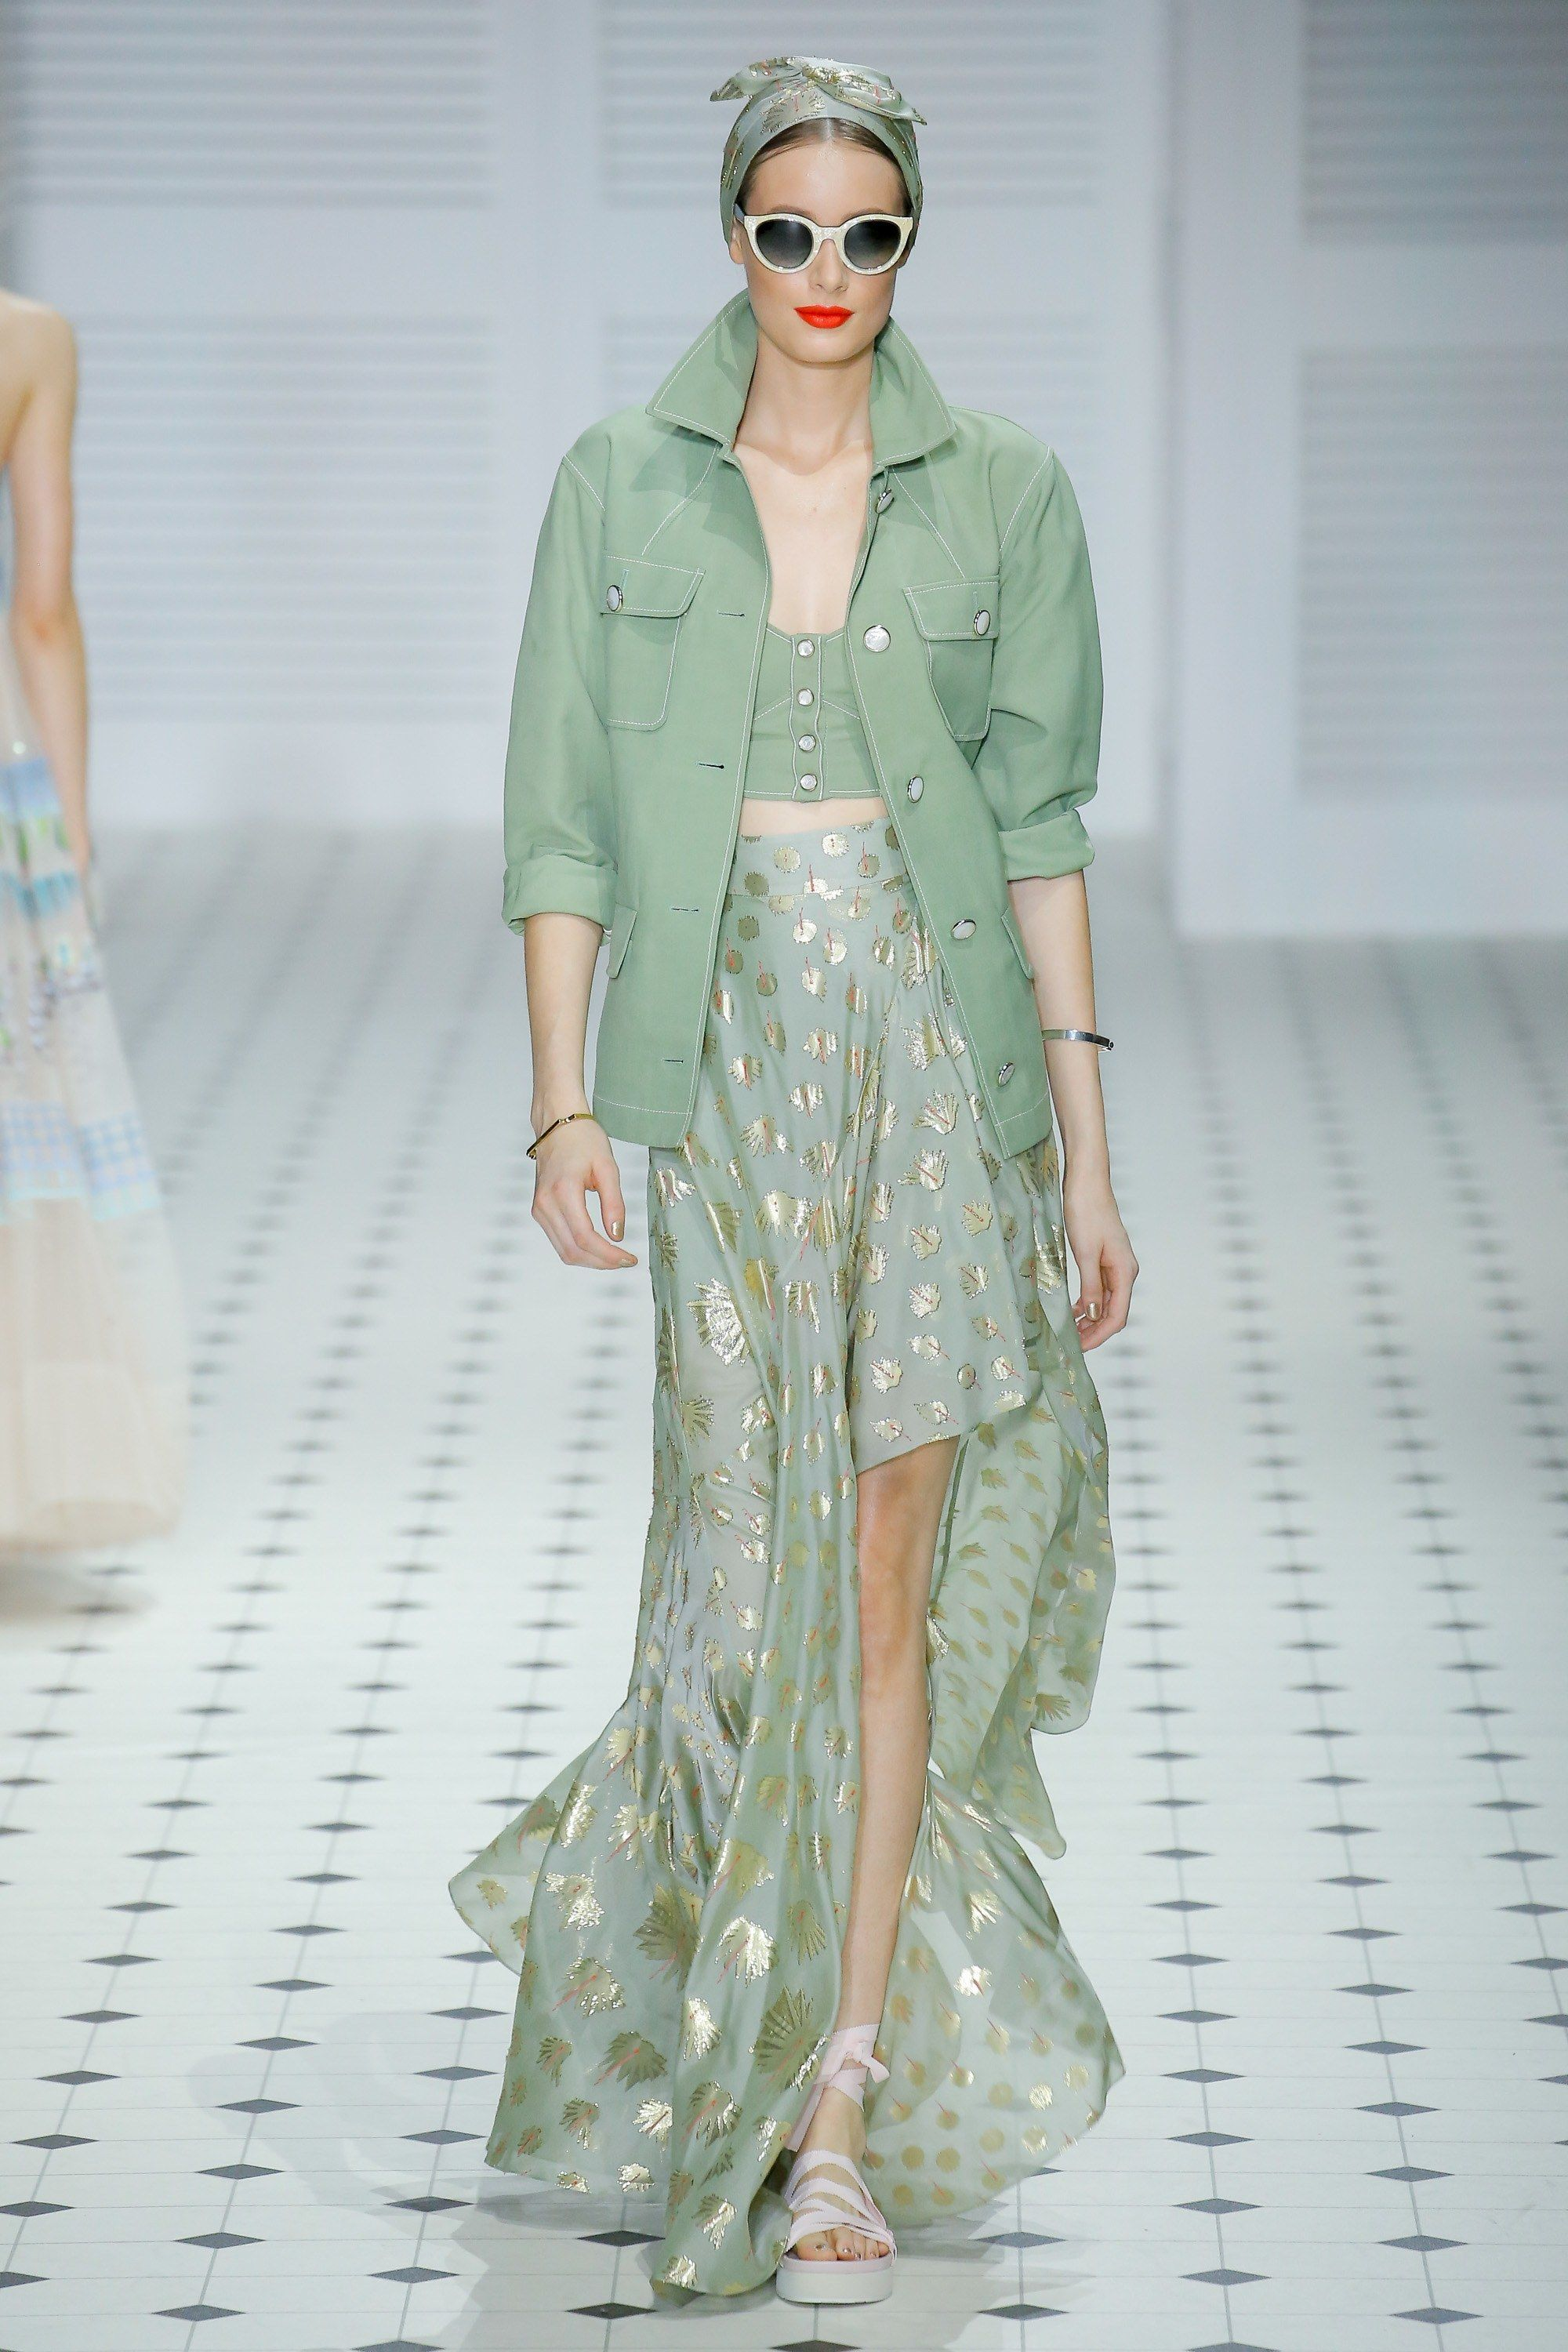 Mint the Spring/Summer 2020 colour Trend TrendBook Trend